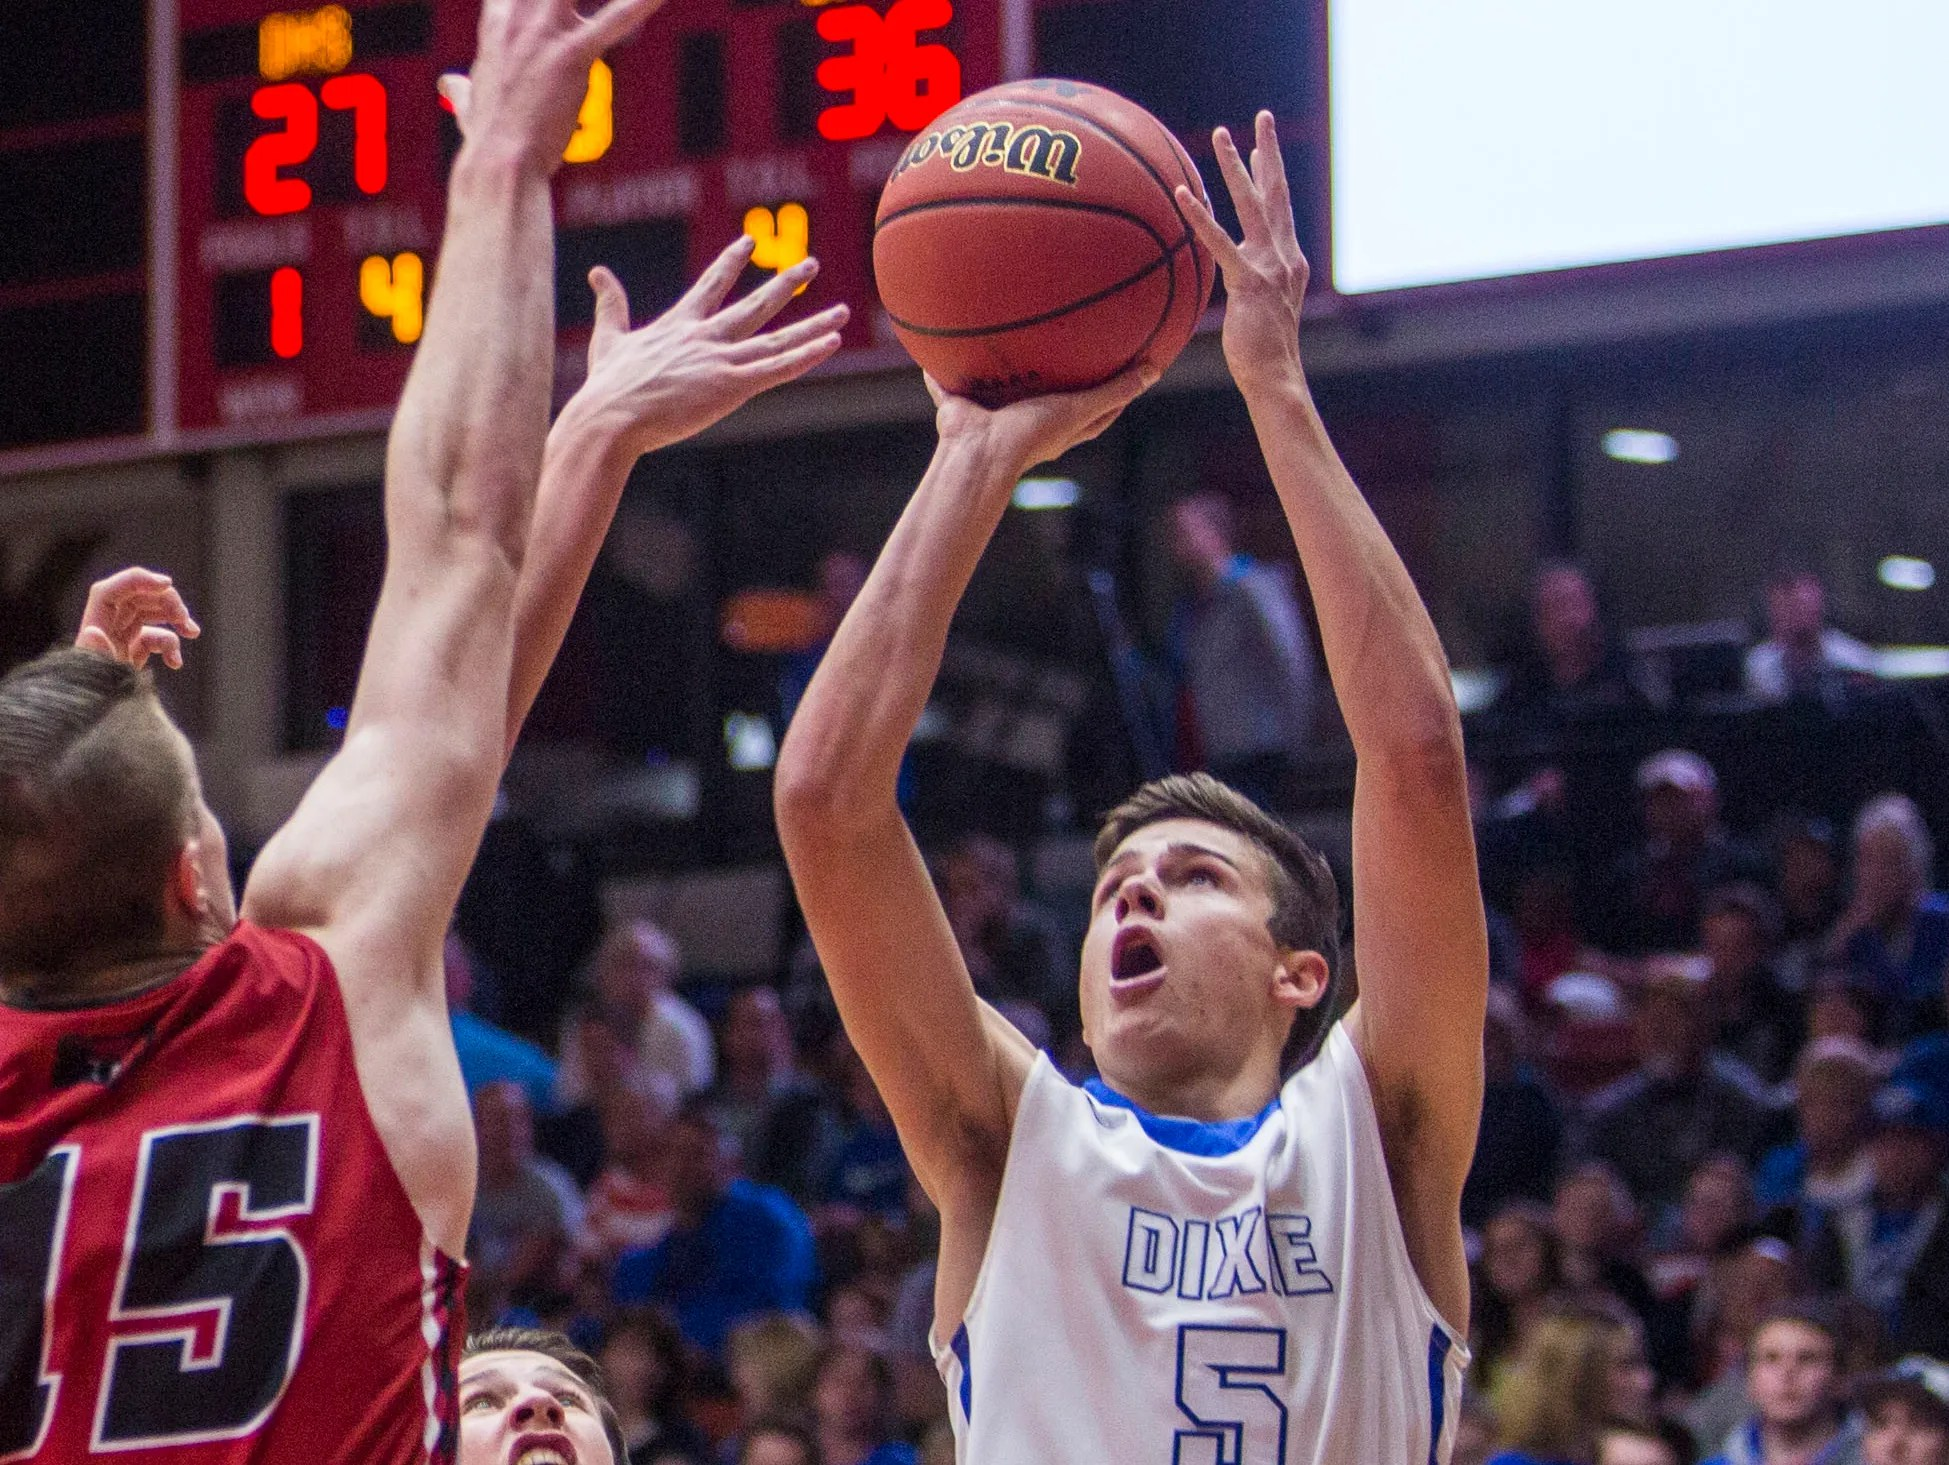 Dixie survives upset, beats Bear River to advance to 3A ...